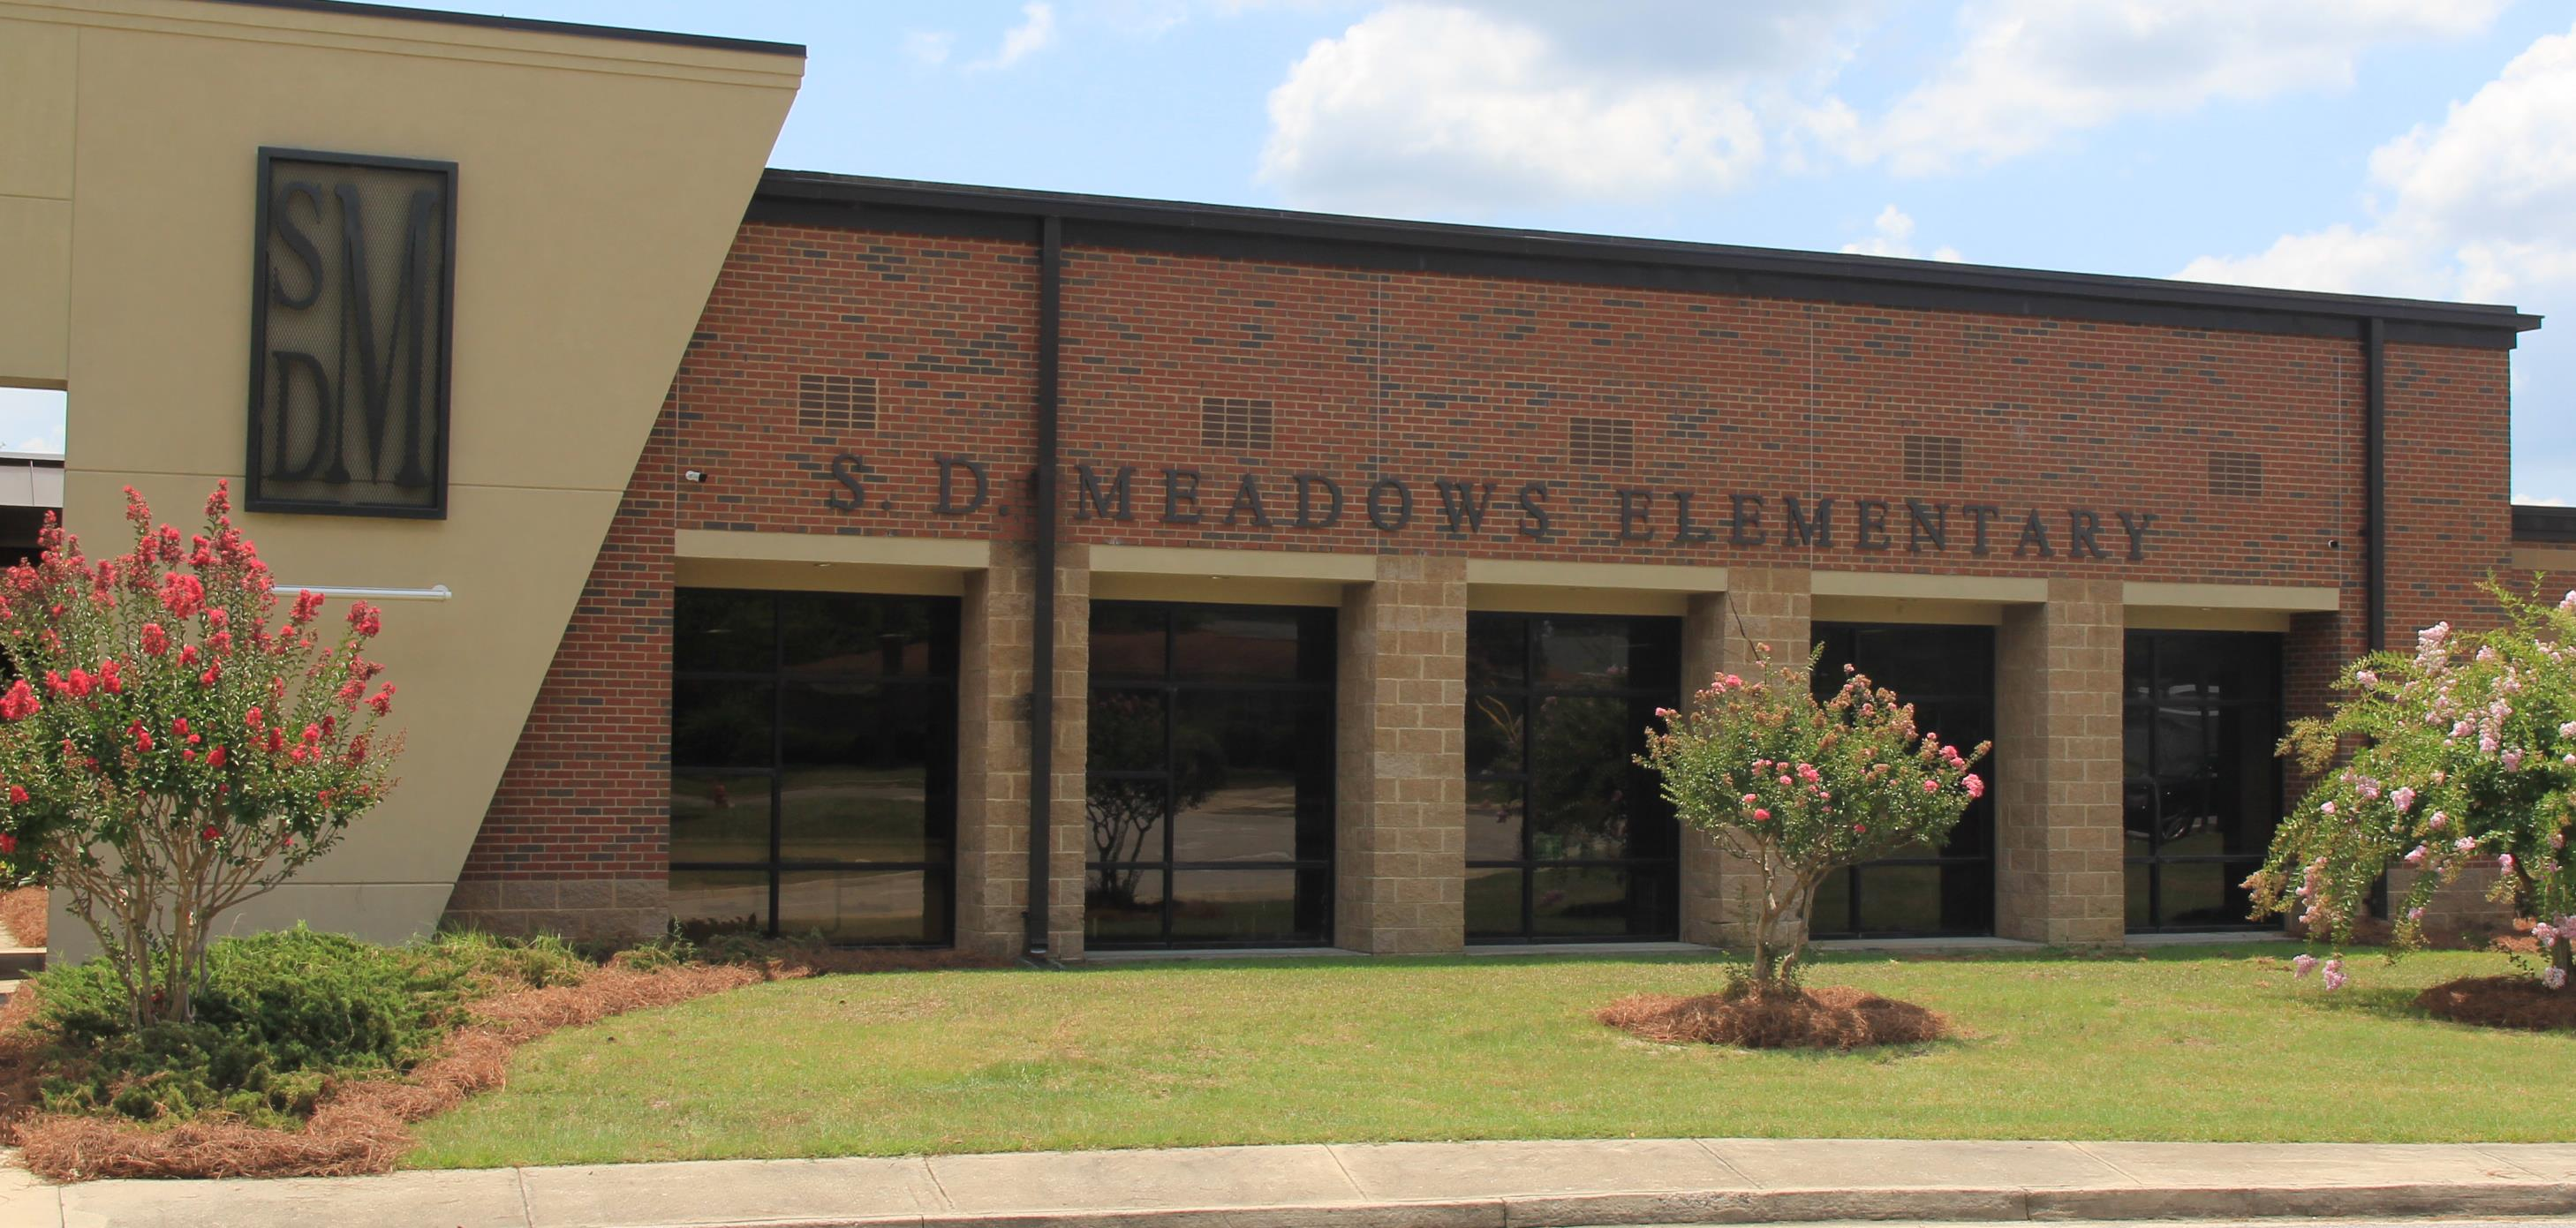 Sally D. Meadows Elementary School Front